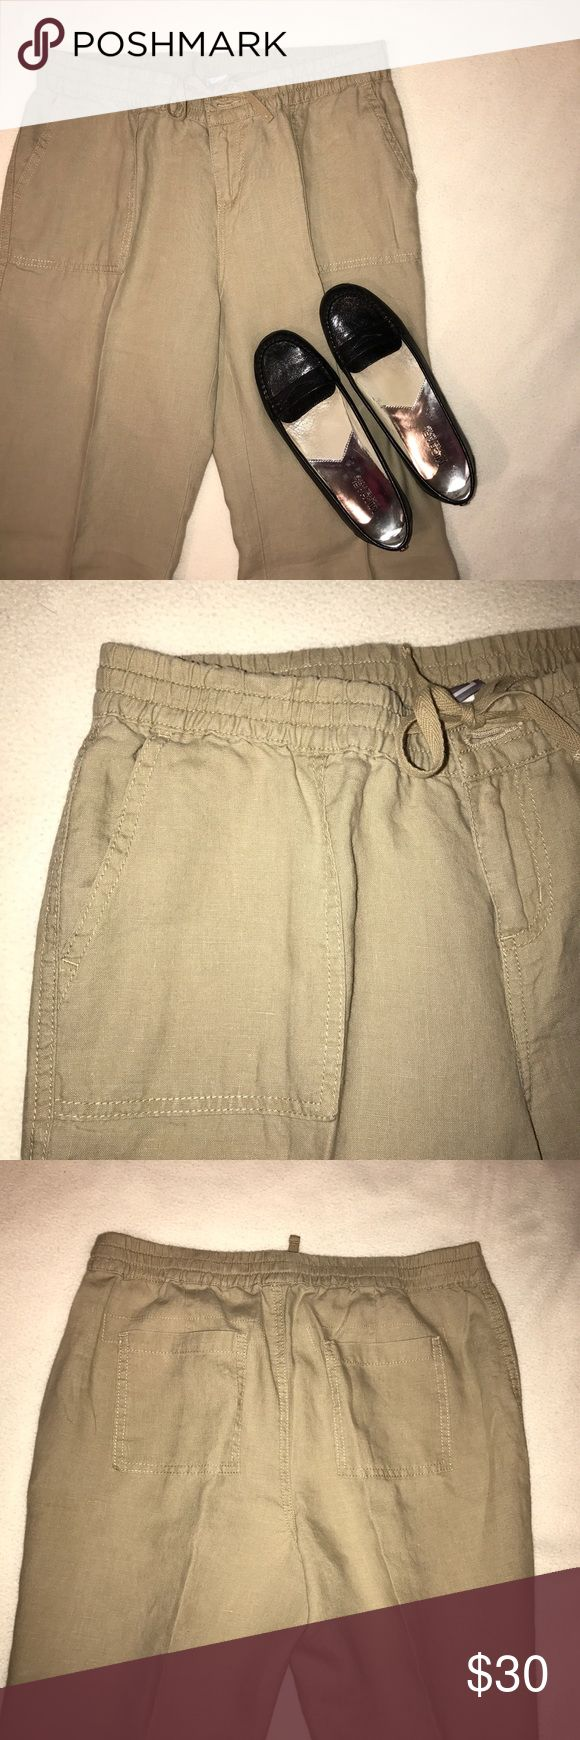 JCP Wide Leg Linen Pants These khaki colored pants are wide leg and 100% linen. They are a loose and comfortable fit. Great condition! They have open front and back pockets. A button, zipper and drawstring to tighten and loosen pants for the perfect fit. ✅OFFERS ❌TRADES jcpenney Pants Wide Leg